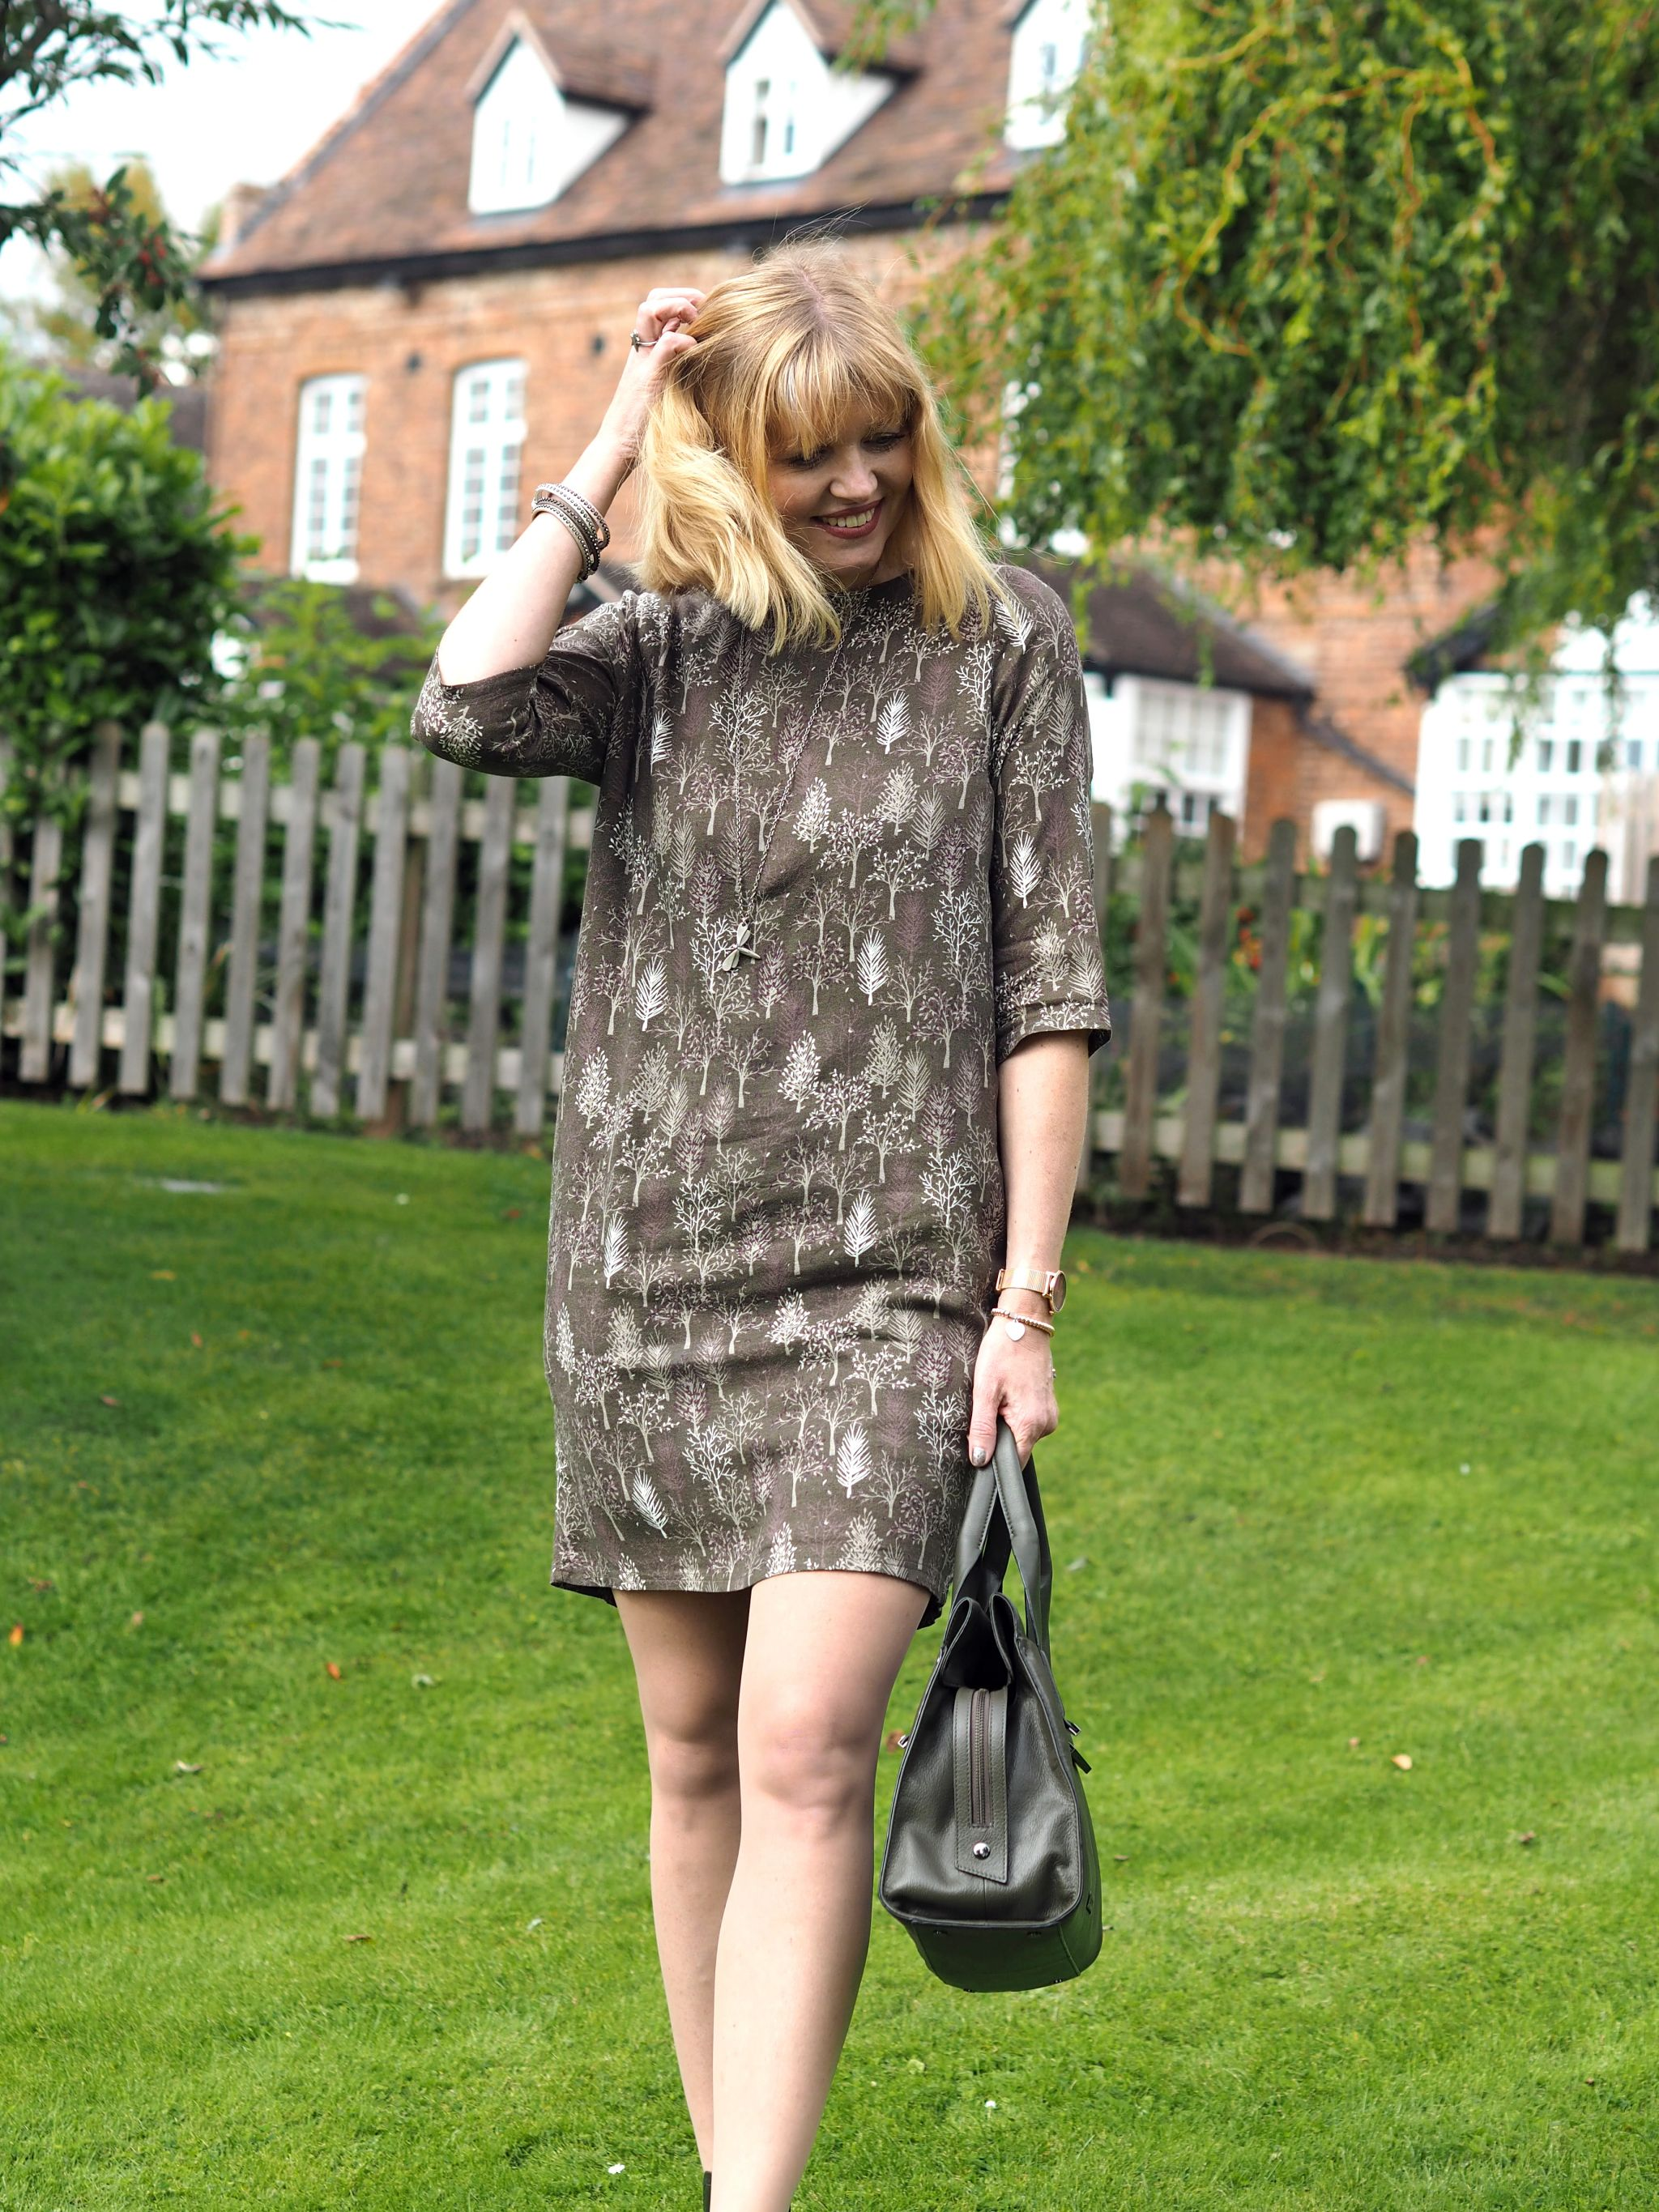 Khaki: Embracing Autumn With A Khaki Dress, A Khaki Bag and Chelsea Boots